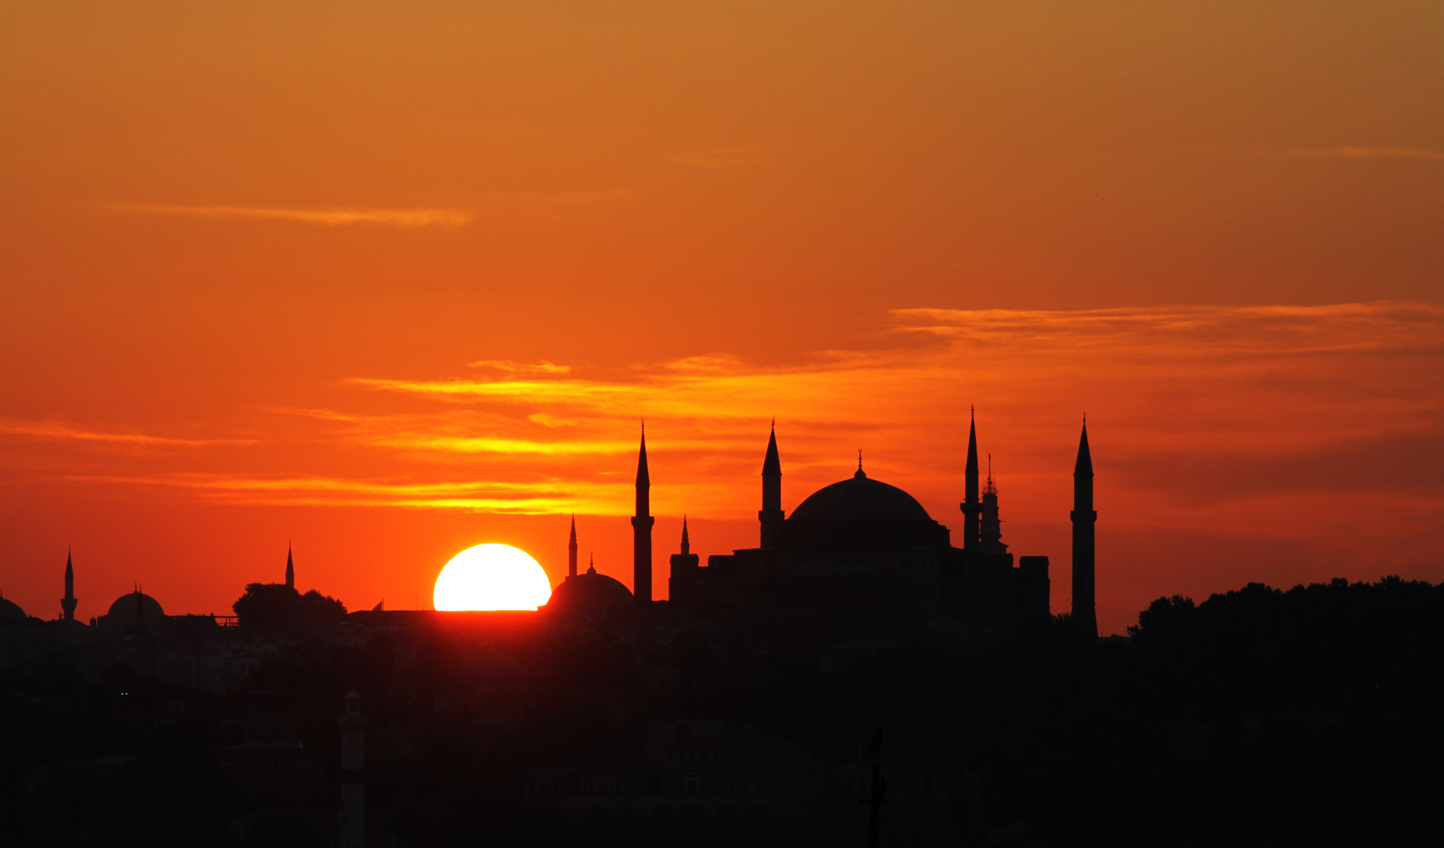 The stunning sunset over Istanbul